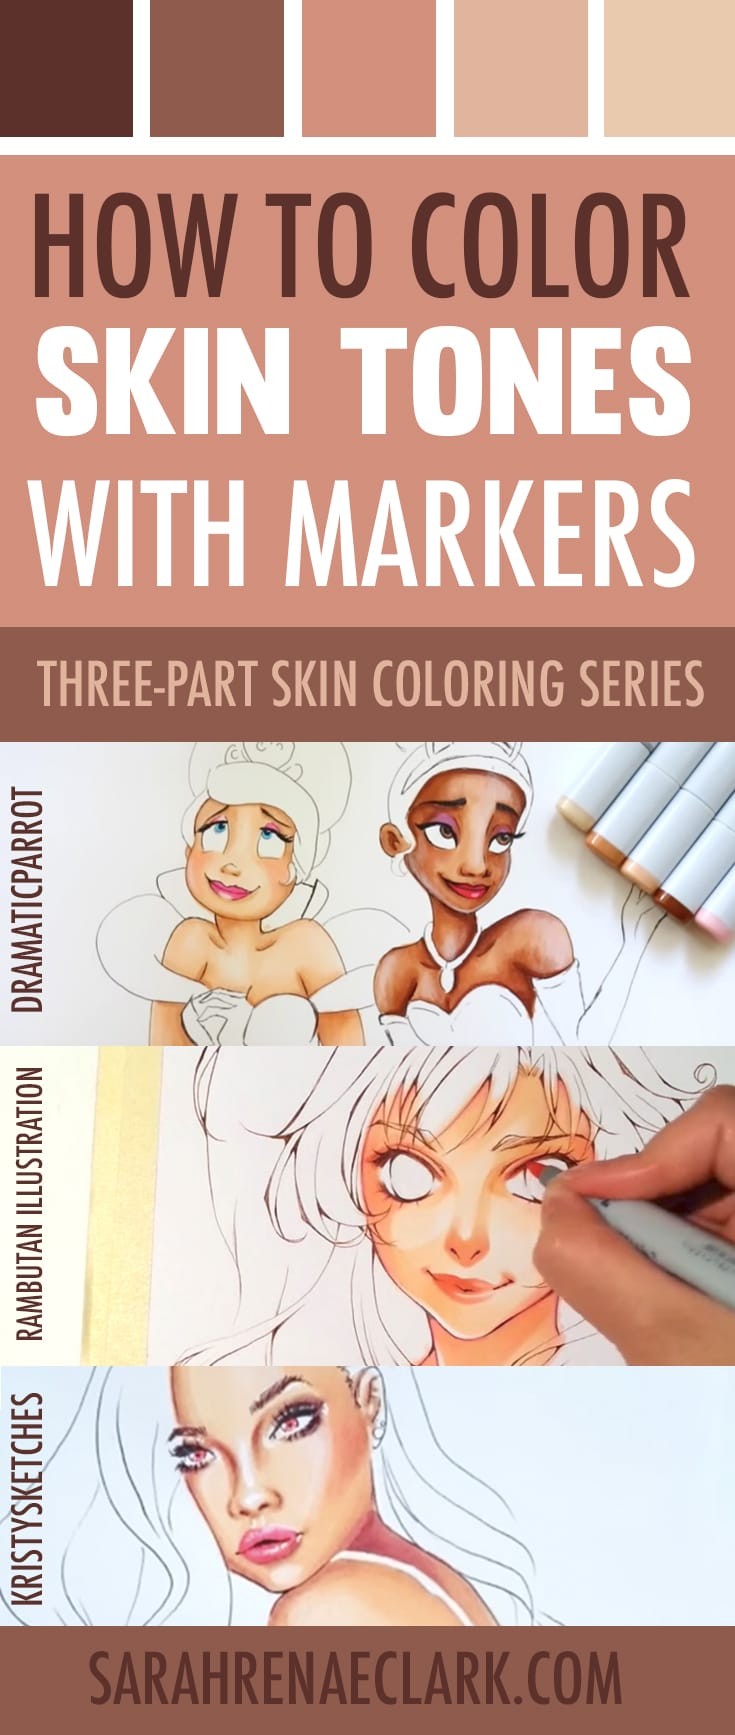 How to Color Skin Tones | 10 Video Tutorials on Skin